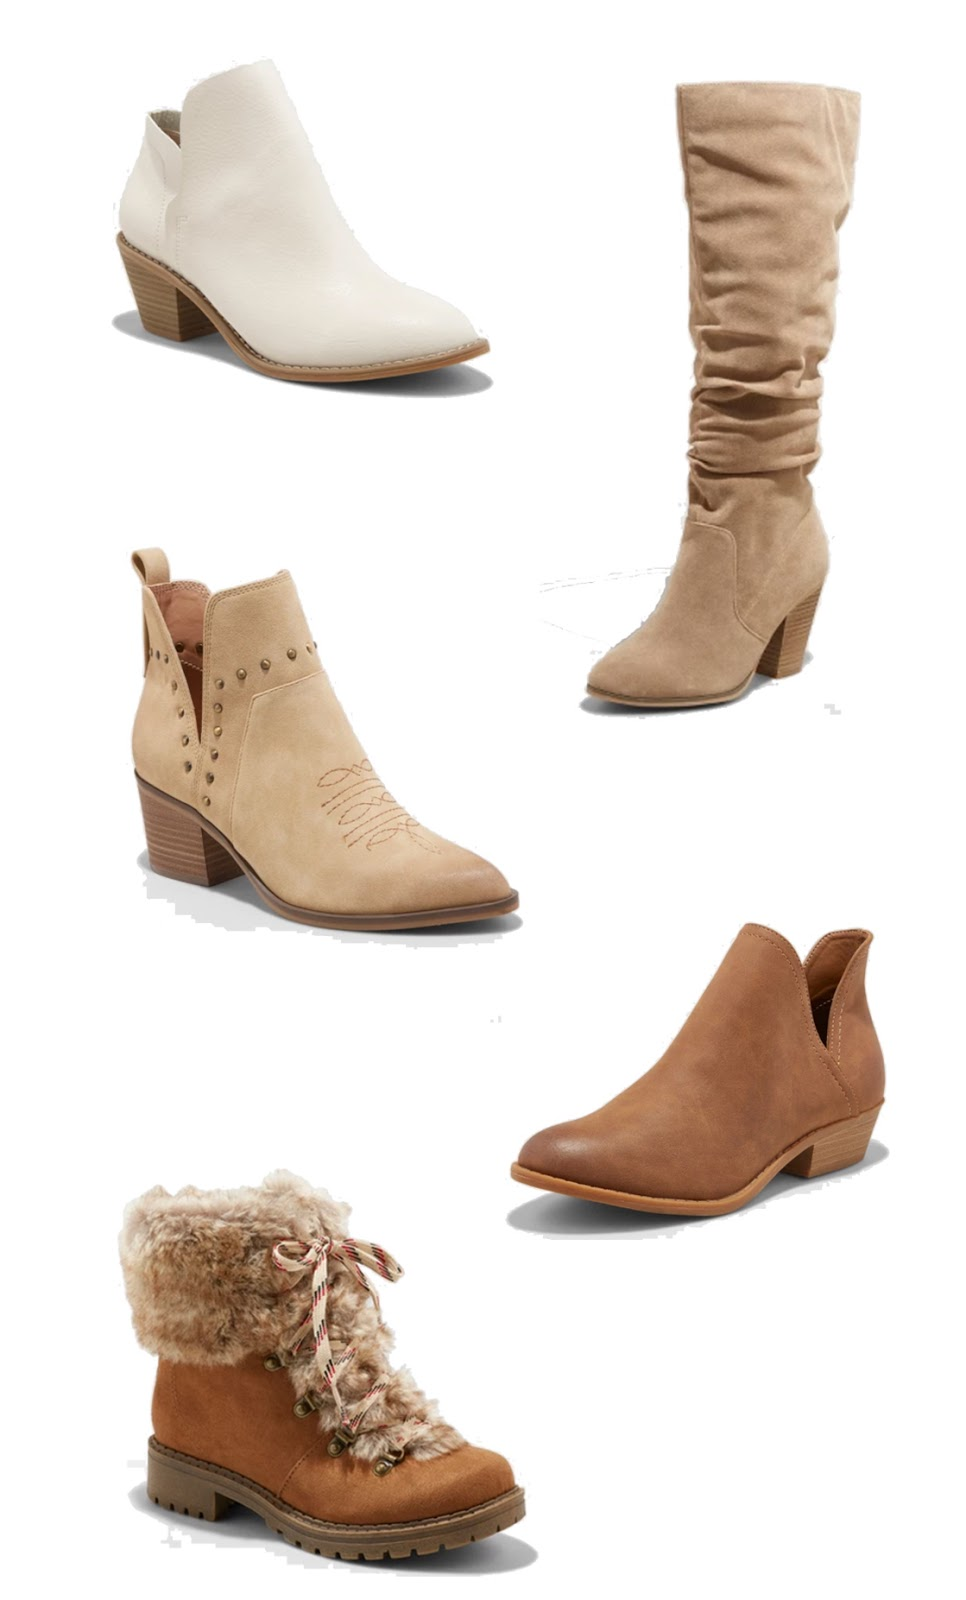 Best Booties and Boots for Fall Under $50